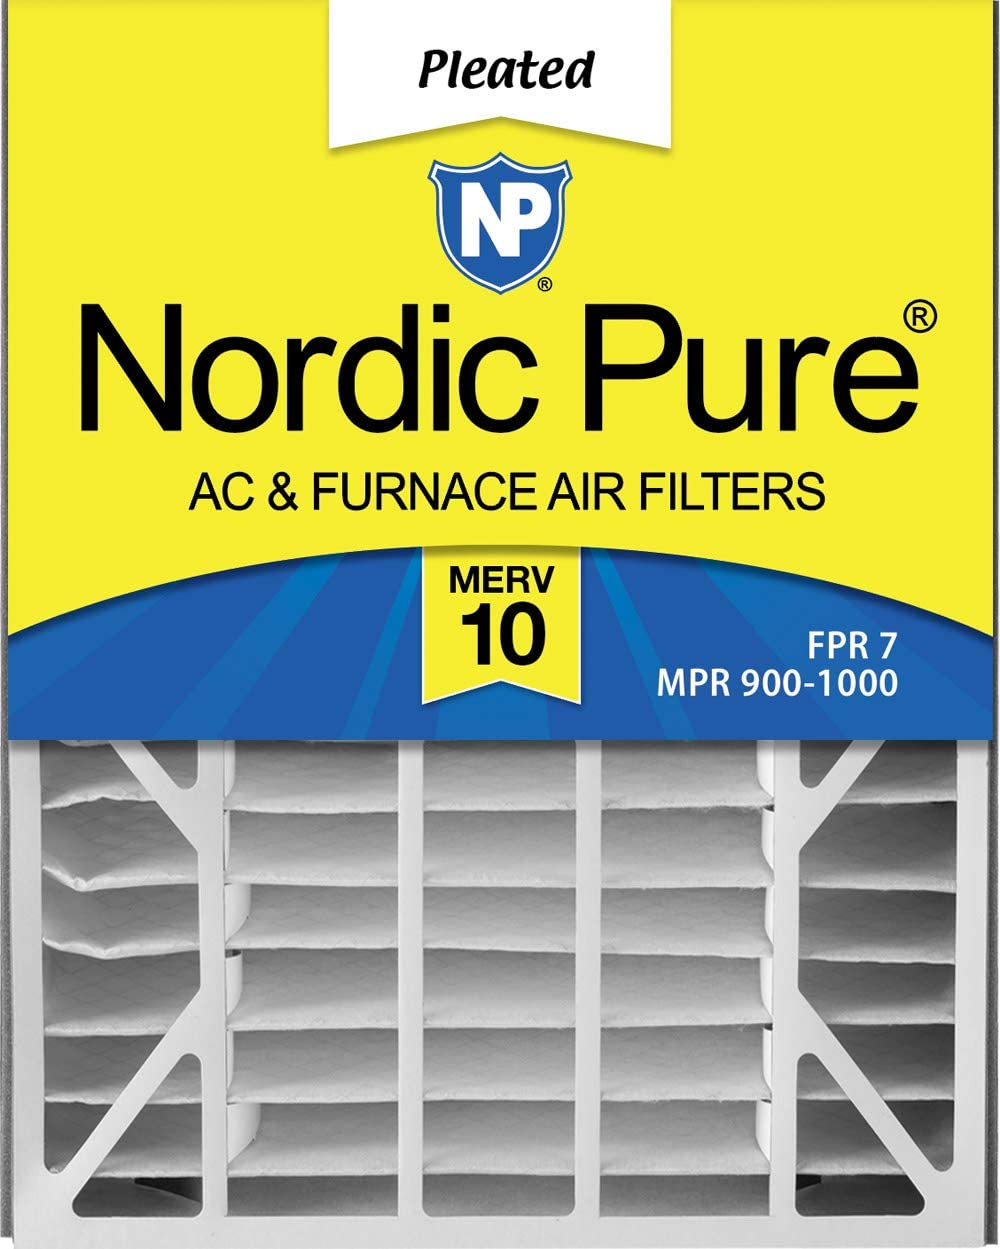 Nordic Pure 20x25x5 (4 7/8) MERV 10 Pleated AC Furnace Air Filters, 2 Pack